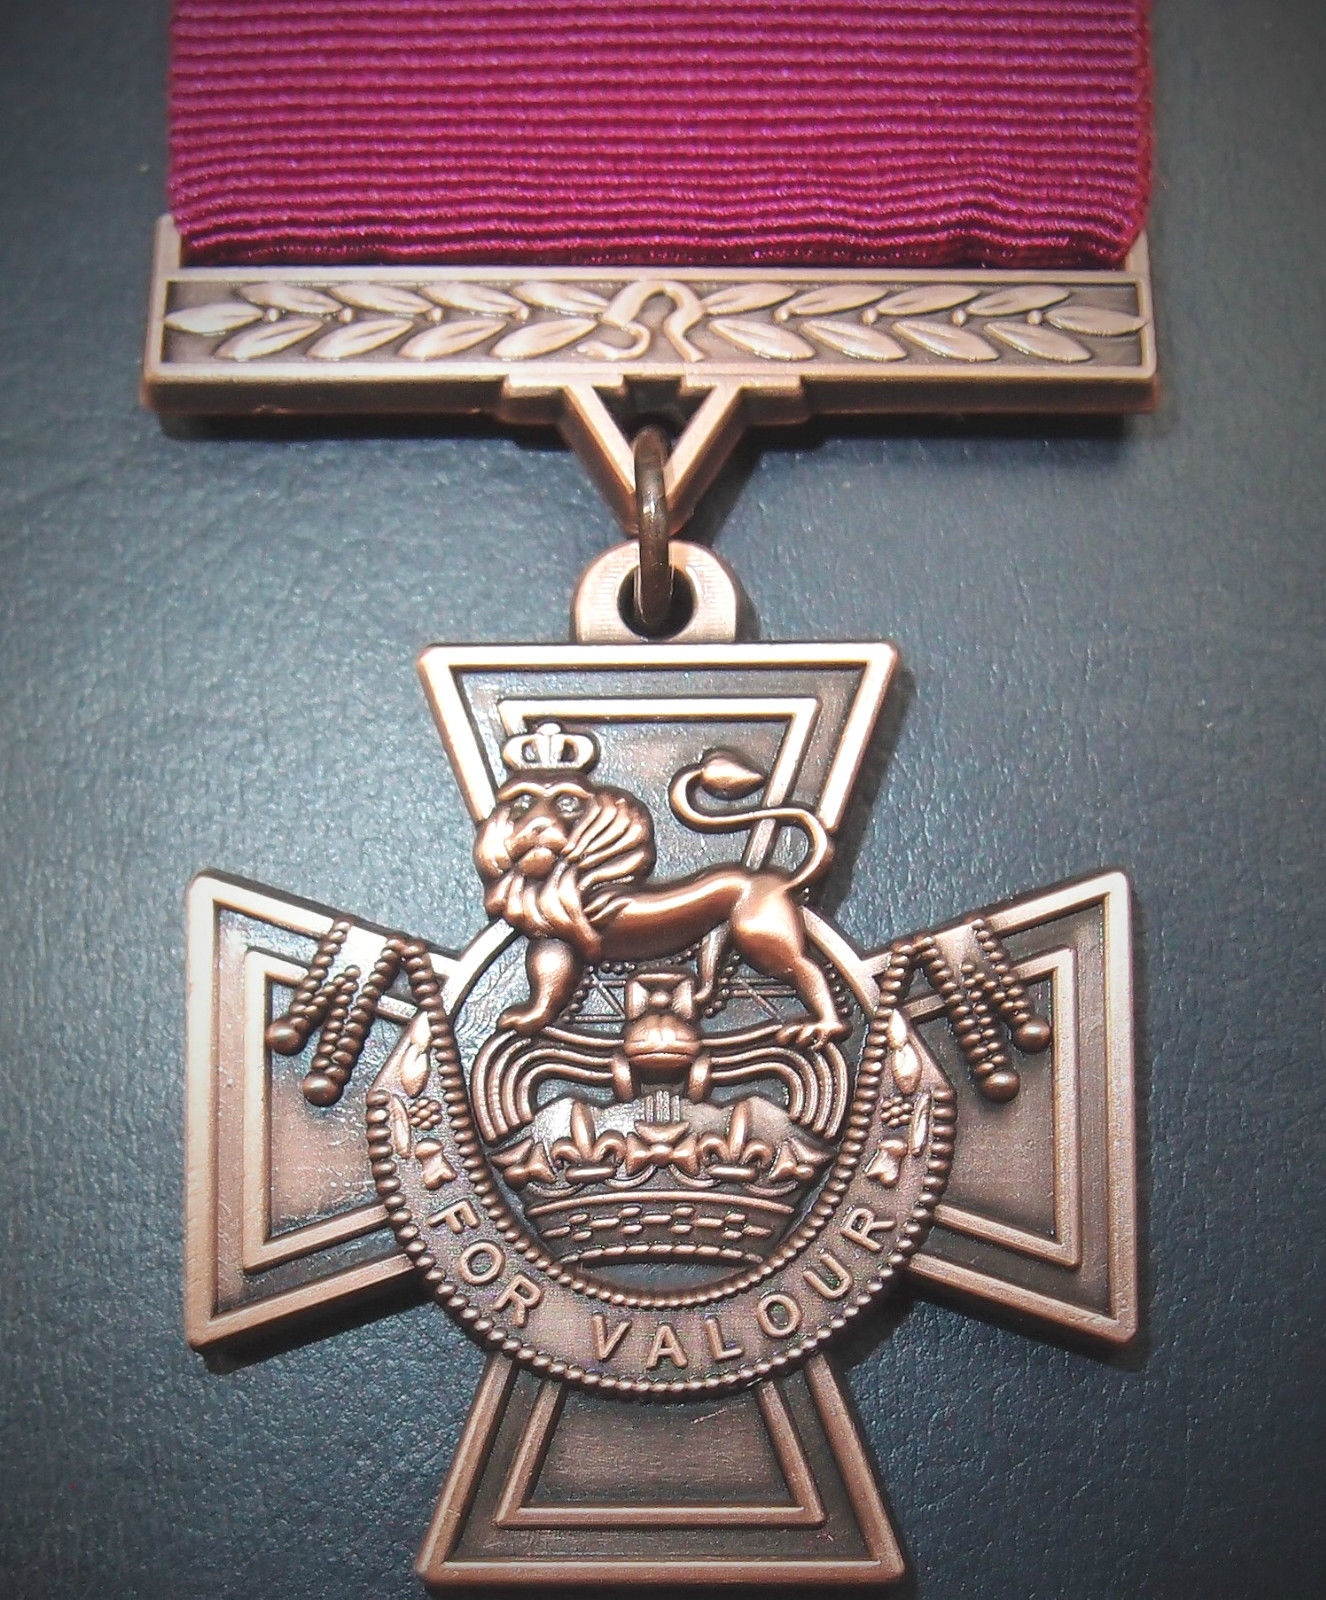 Victoria cross medal ww2 pictures - festival photo nature namur 2013 oscar